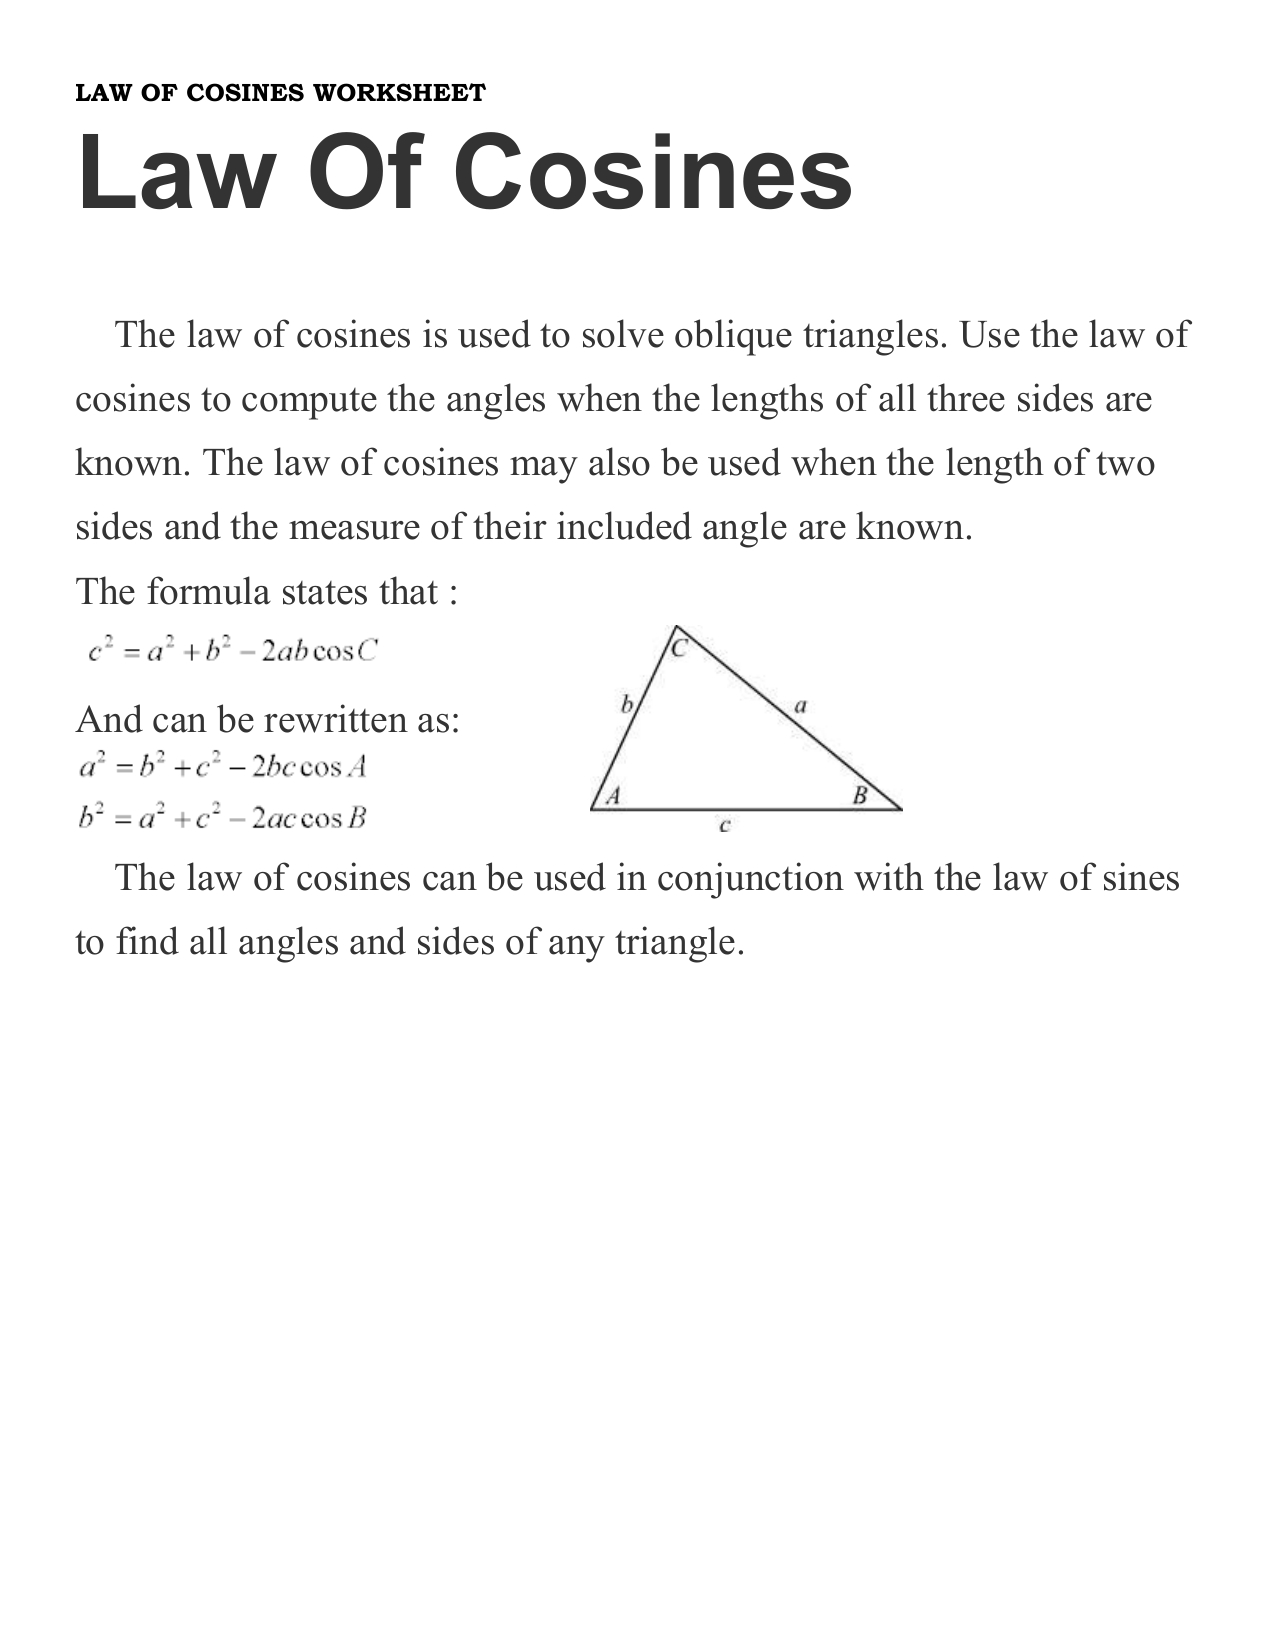 The Law Of Sines Worksheet Answers